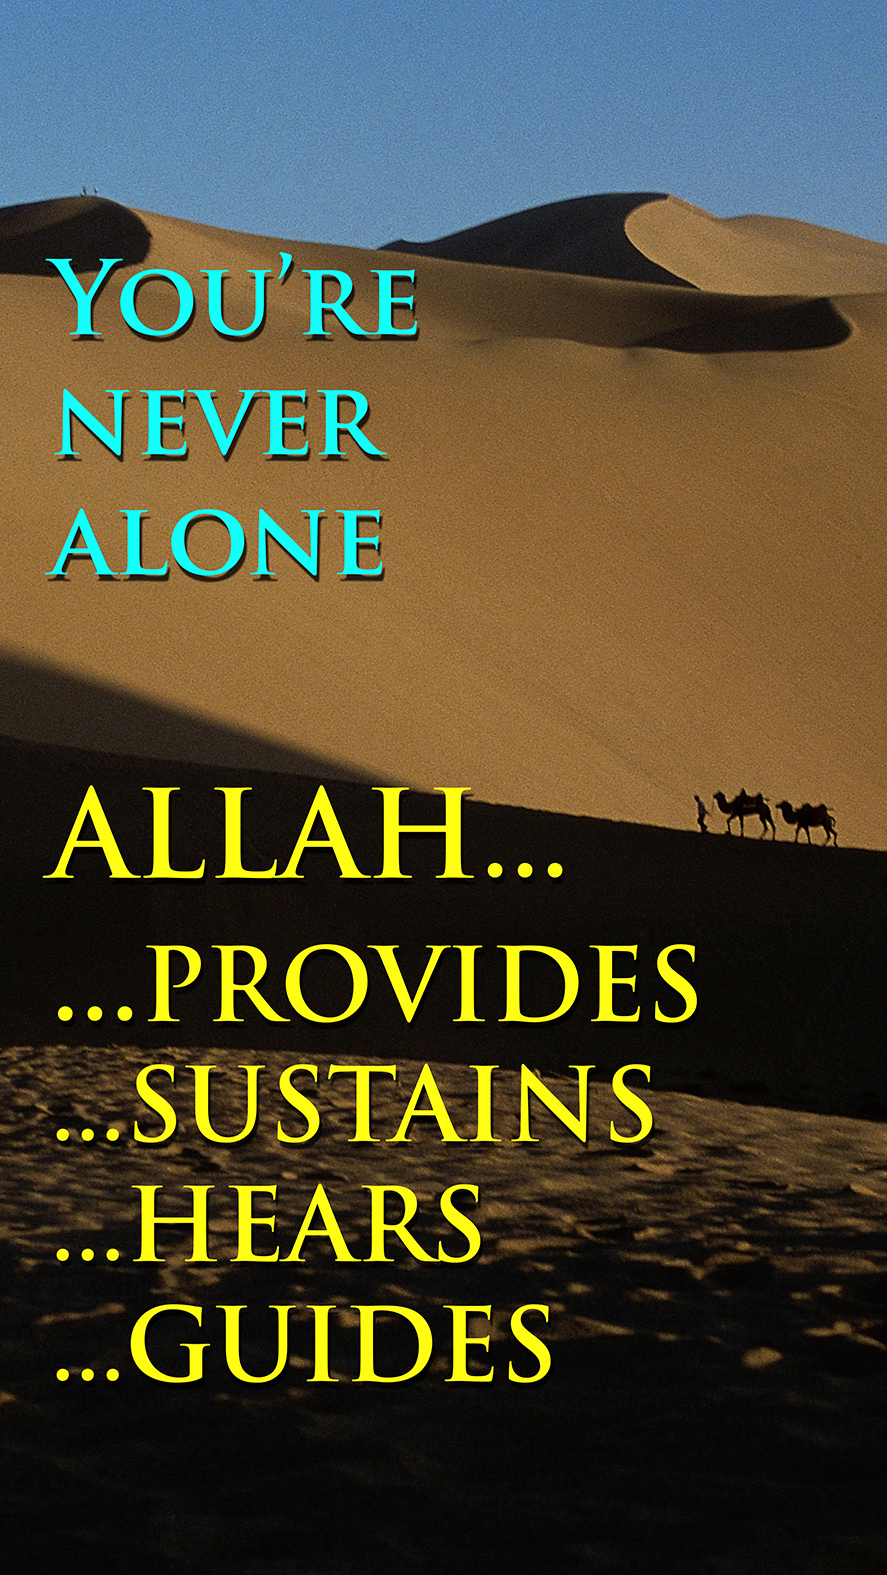 Allah Provides-sustains Med - Islamic Allah Images Downloading - HD Wallpaper